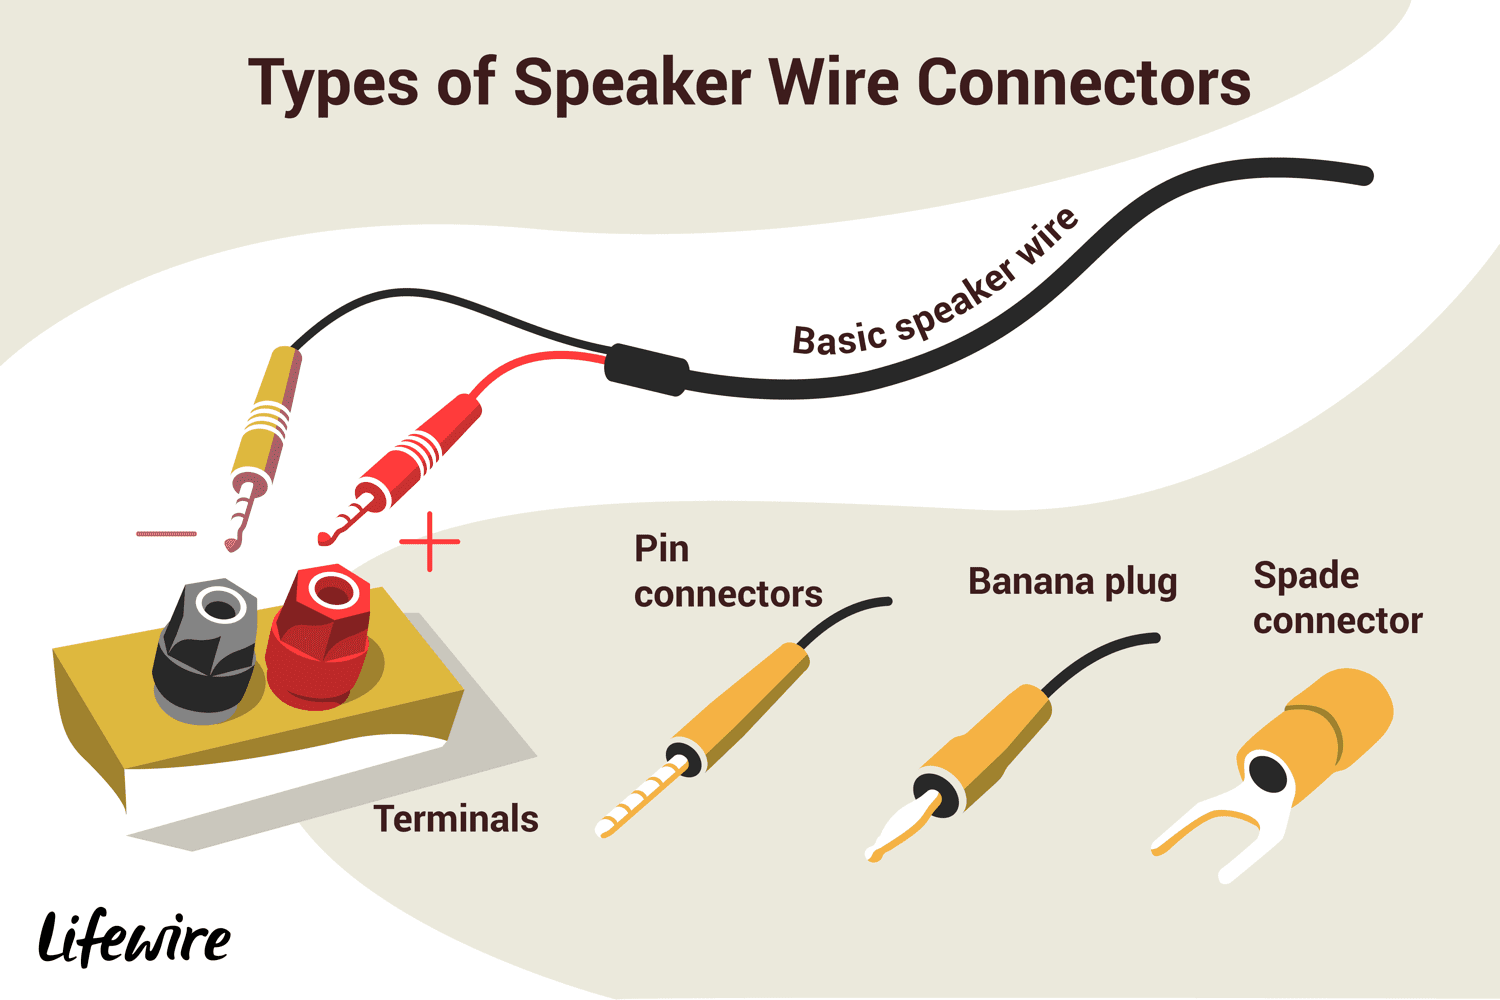 rca plug to speaker wire diagram microsoft exchange topology how connect speakers using an illustration of the different types connectors